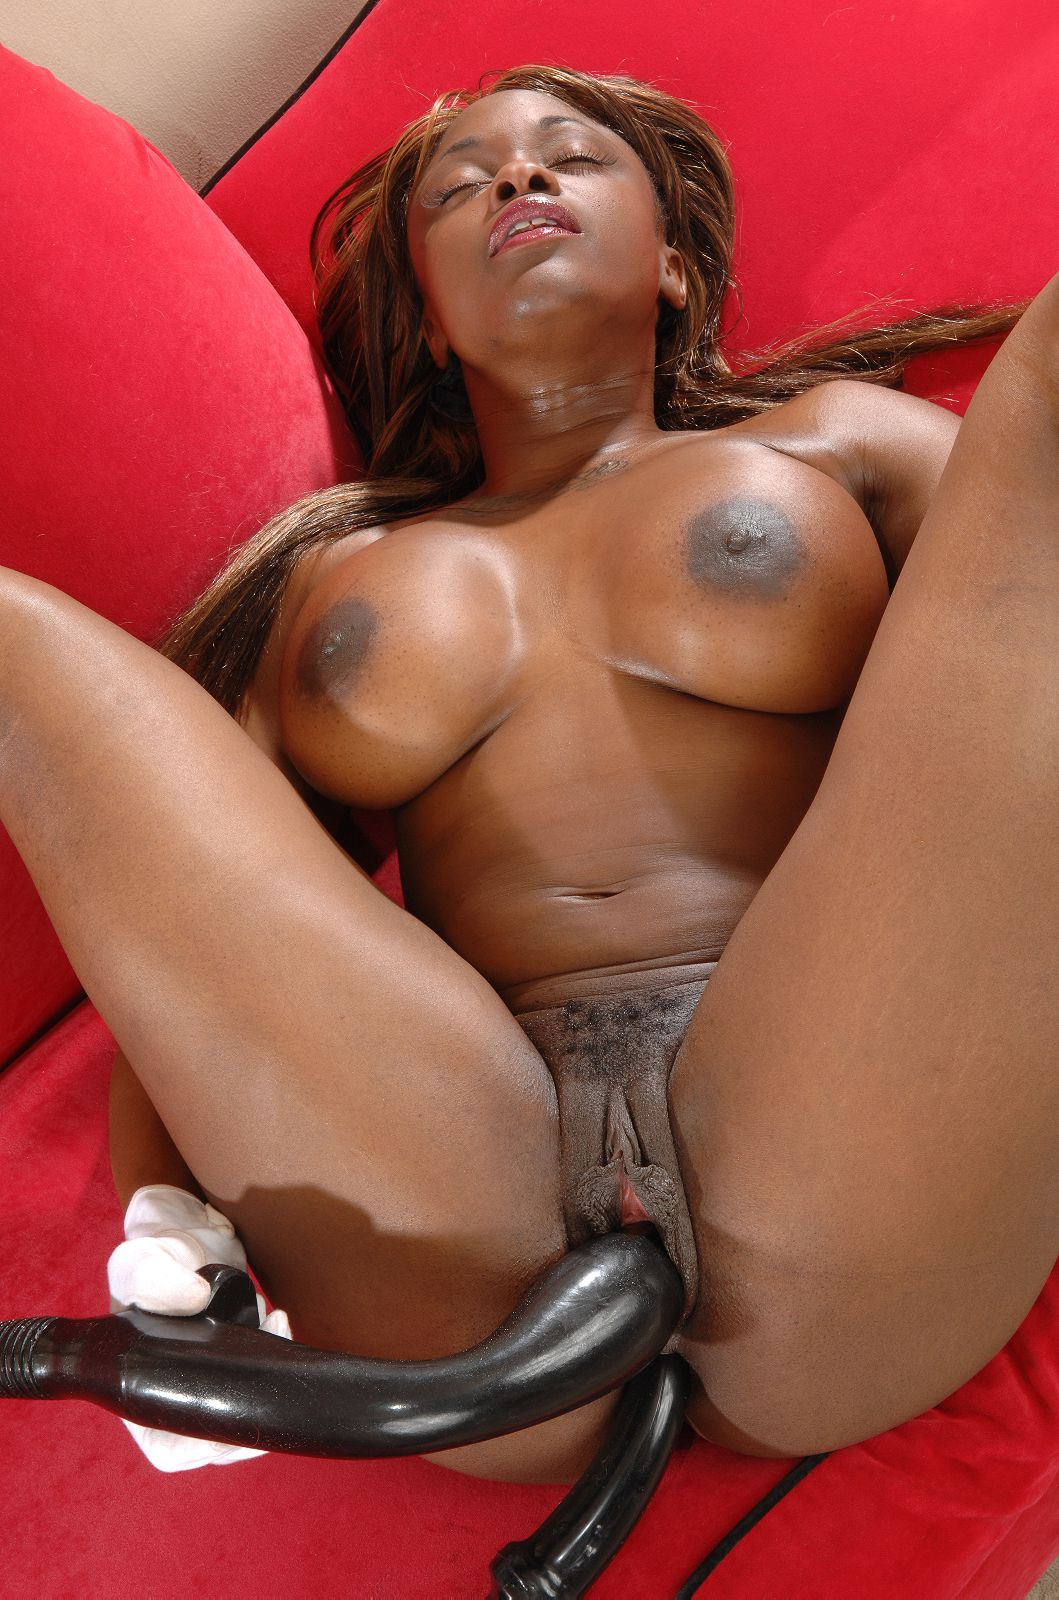 Black Girls Double Dildo Hot Porn Images Free Sex Pics And Best